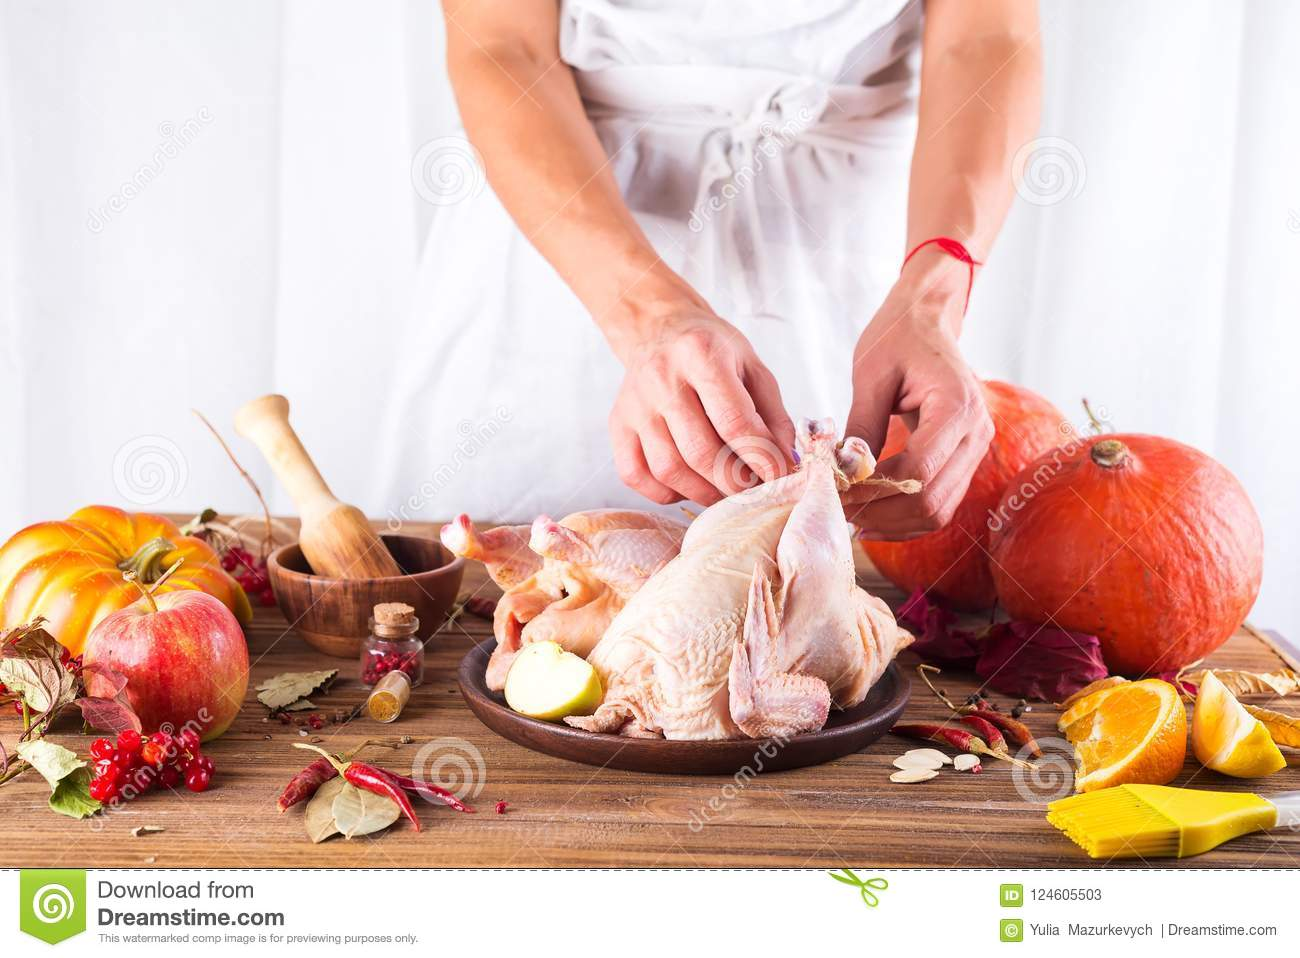 Raw Chicken In A Plate With Apples, Oranges And Spices On A